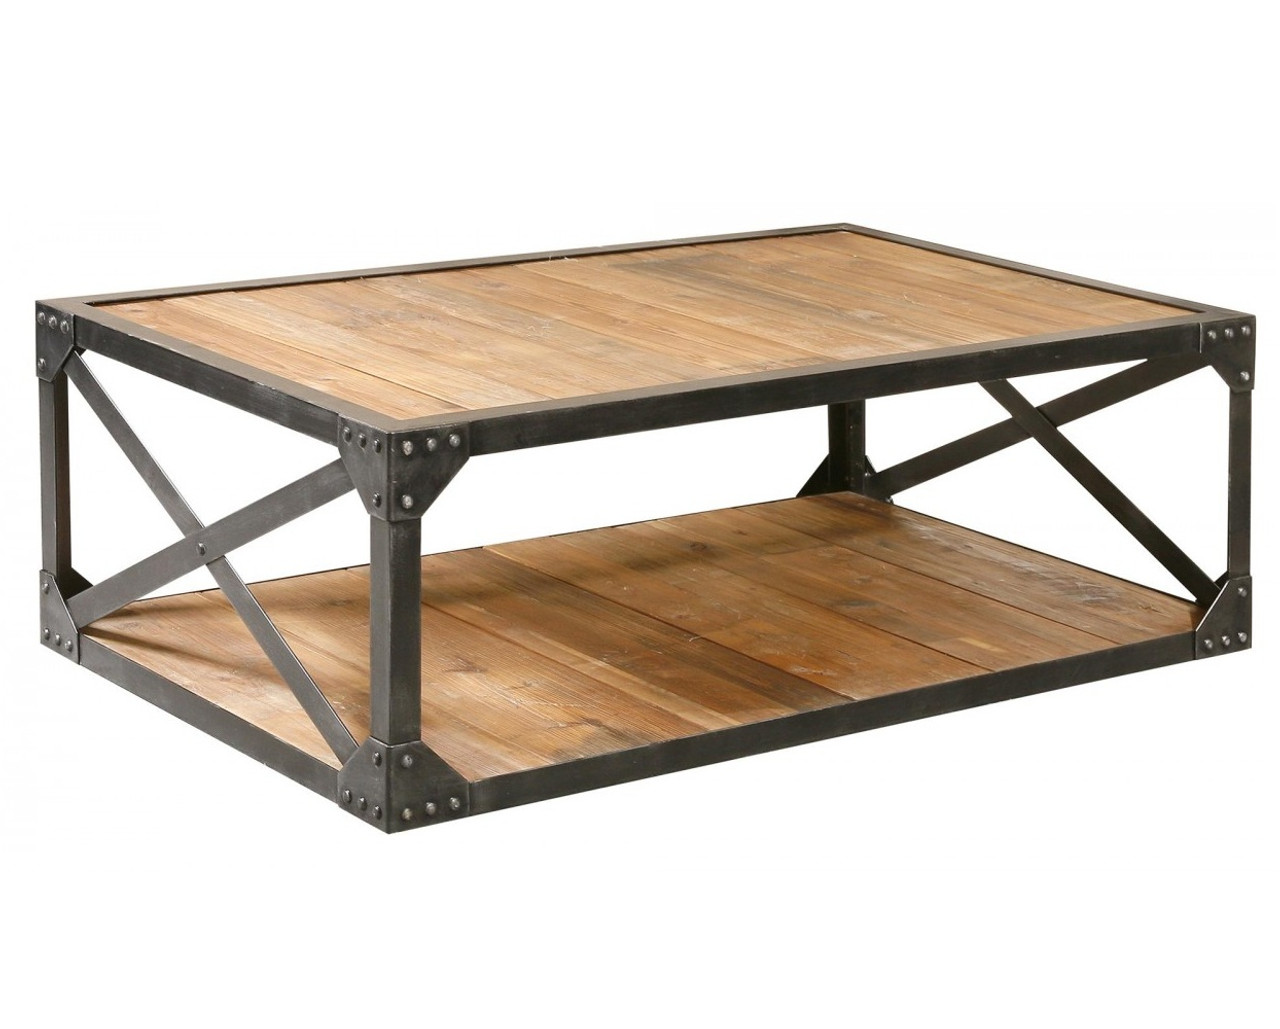 Industrial metal and wood coffee 51 table rectangular - Les plus belles tables basses ...